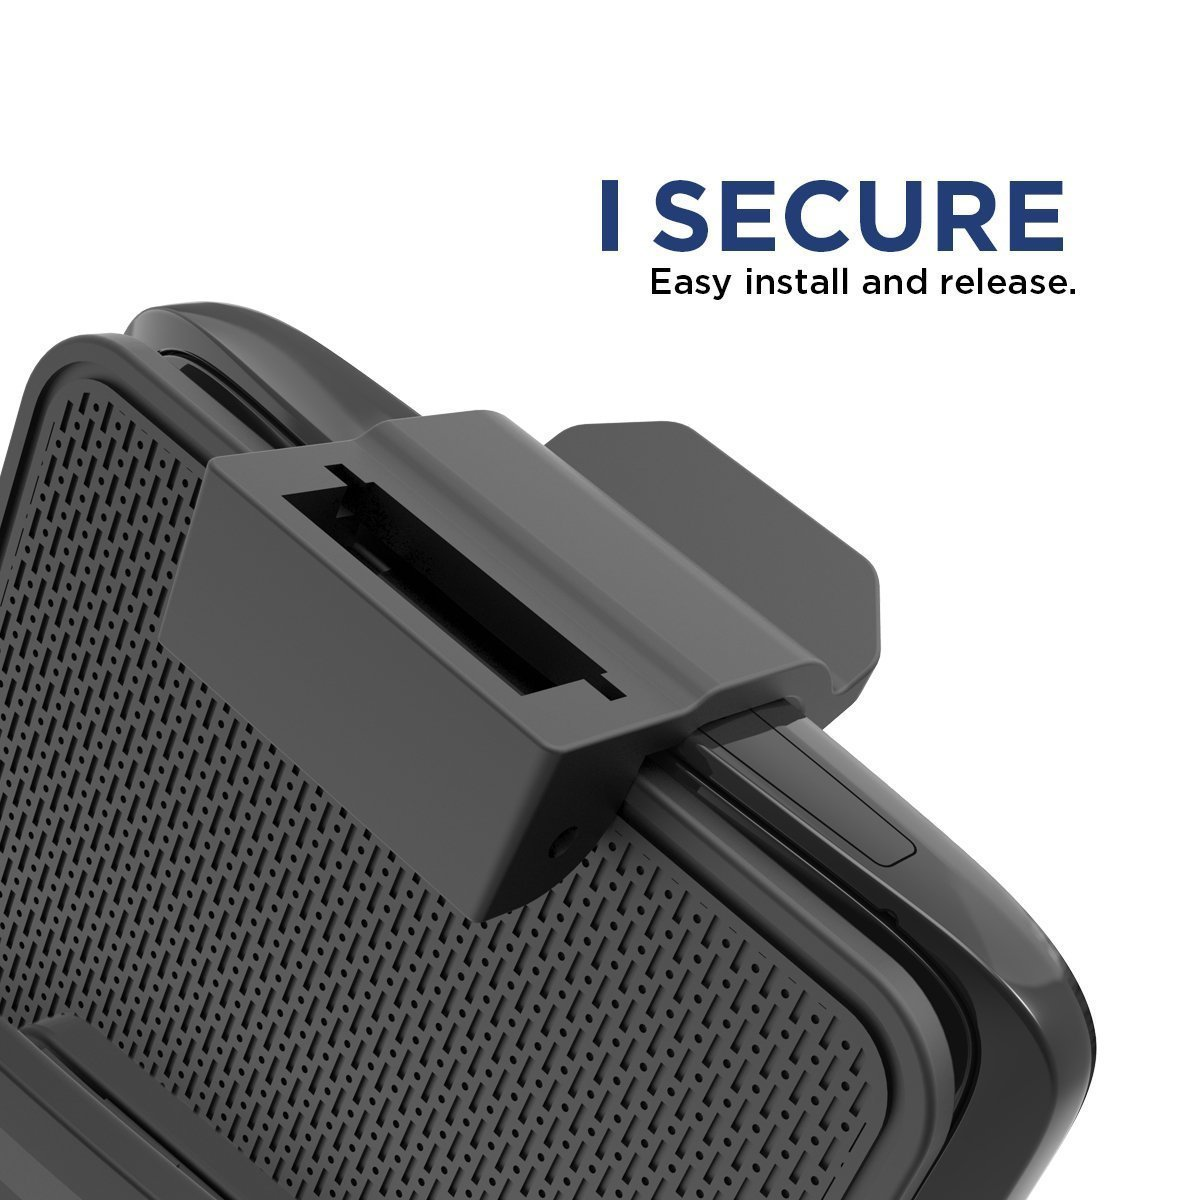 detailed look 3f31c 52a72 iPhone 7 Plus Lifeproof Fre Holster - Encased